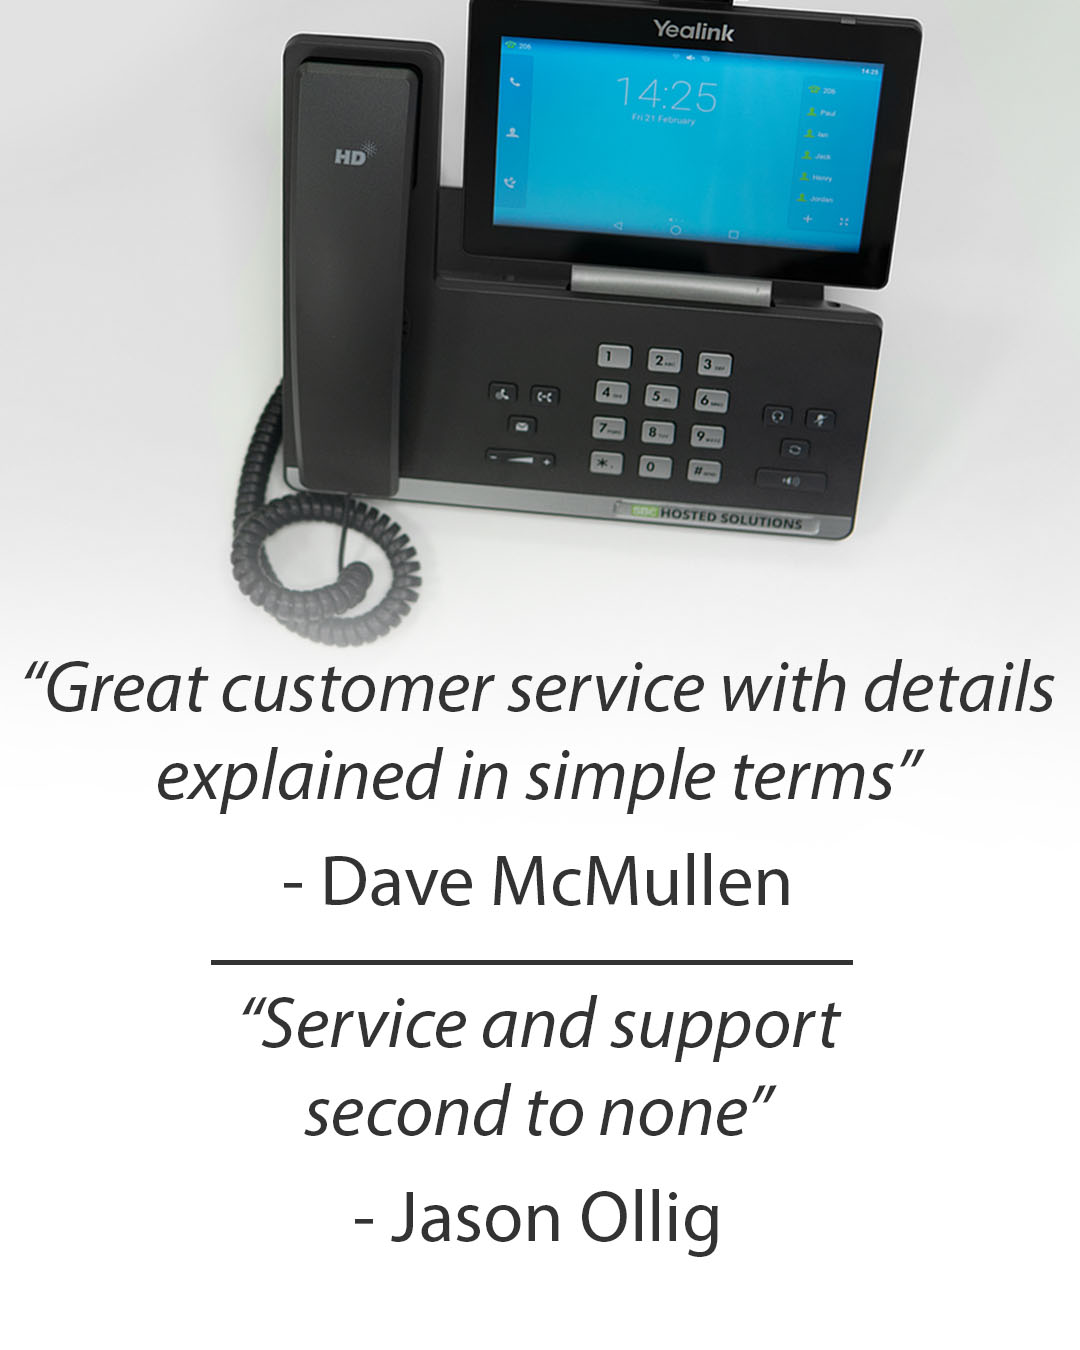 Two reviews of Southern Business Communications Ltd by happy customers Dave McMullen and Jason Olig